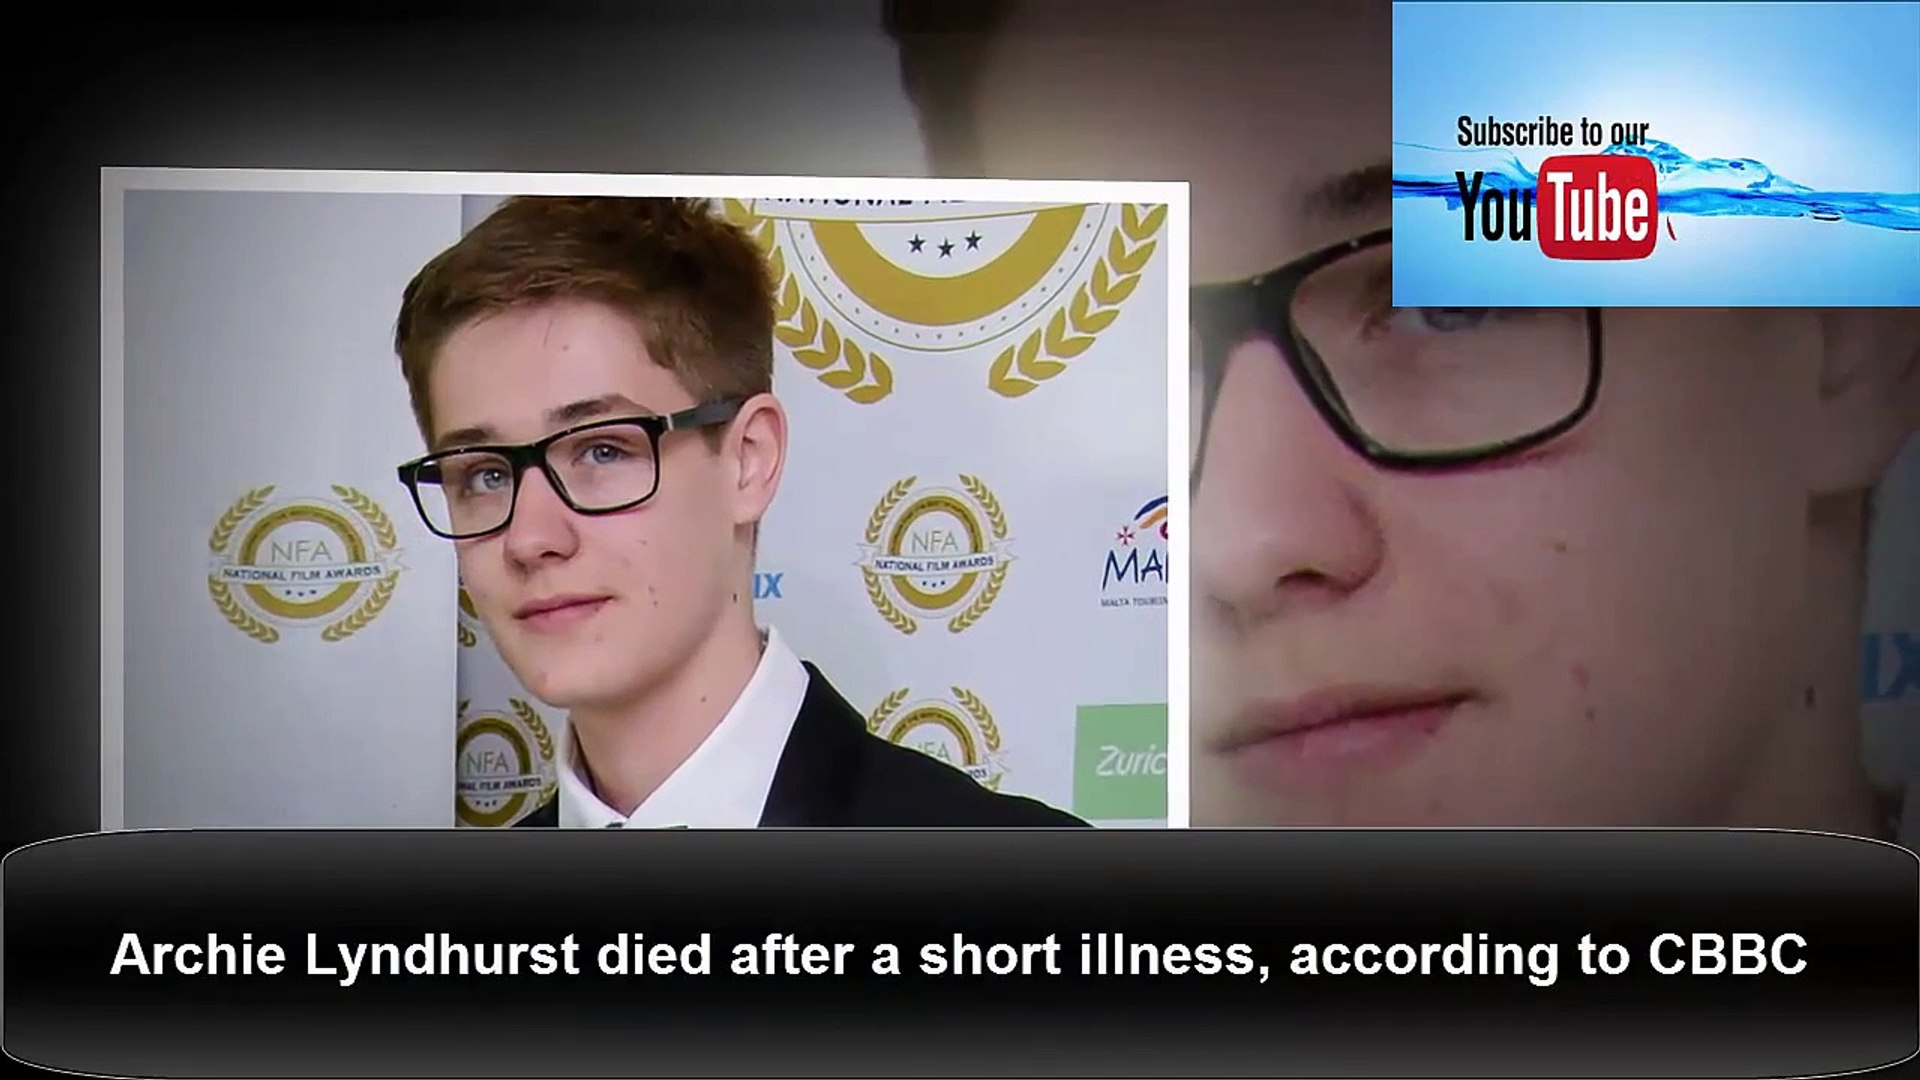 Archie Lyndhurst Star Of So Awkward And Son Of Actor Nicholas Lyndhurst Dies At 19 Video Dailymotion